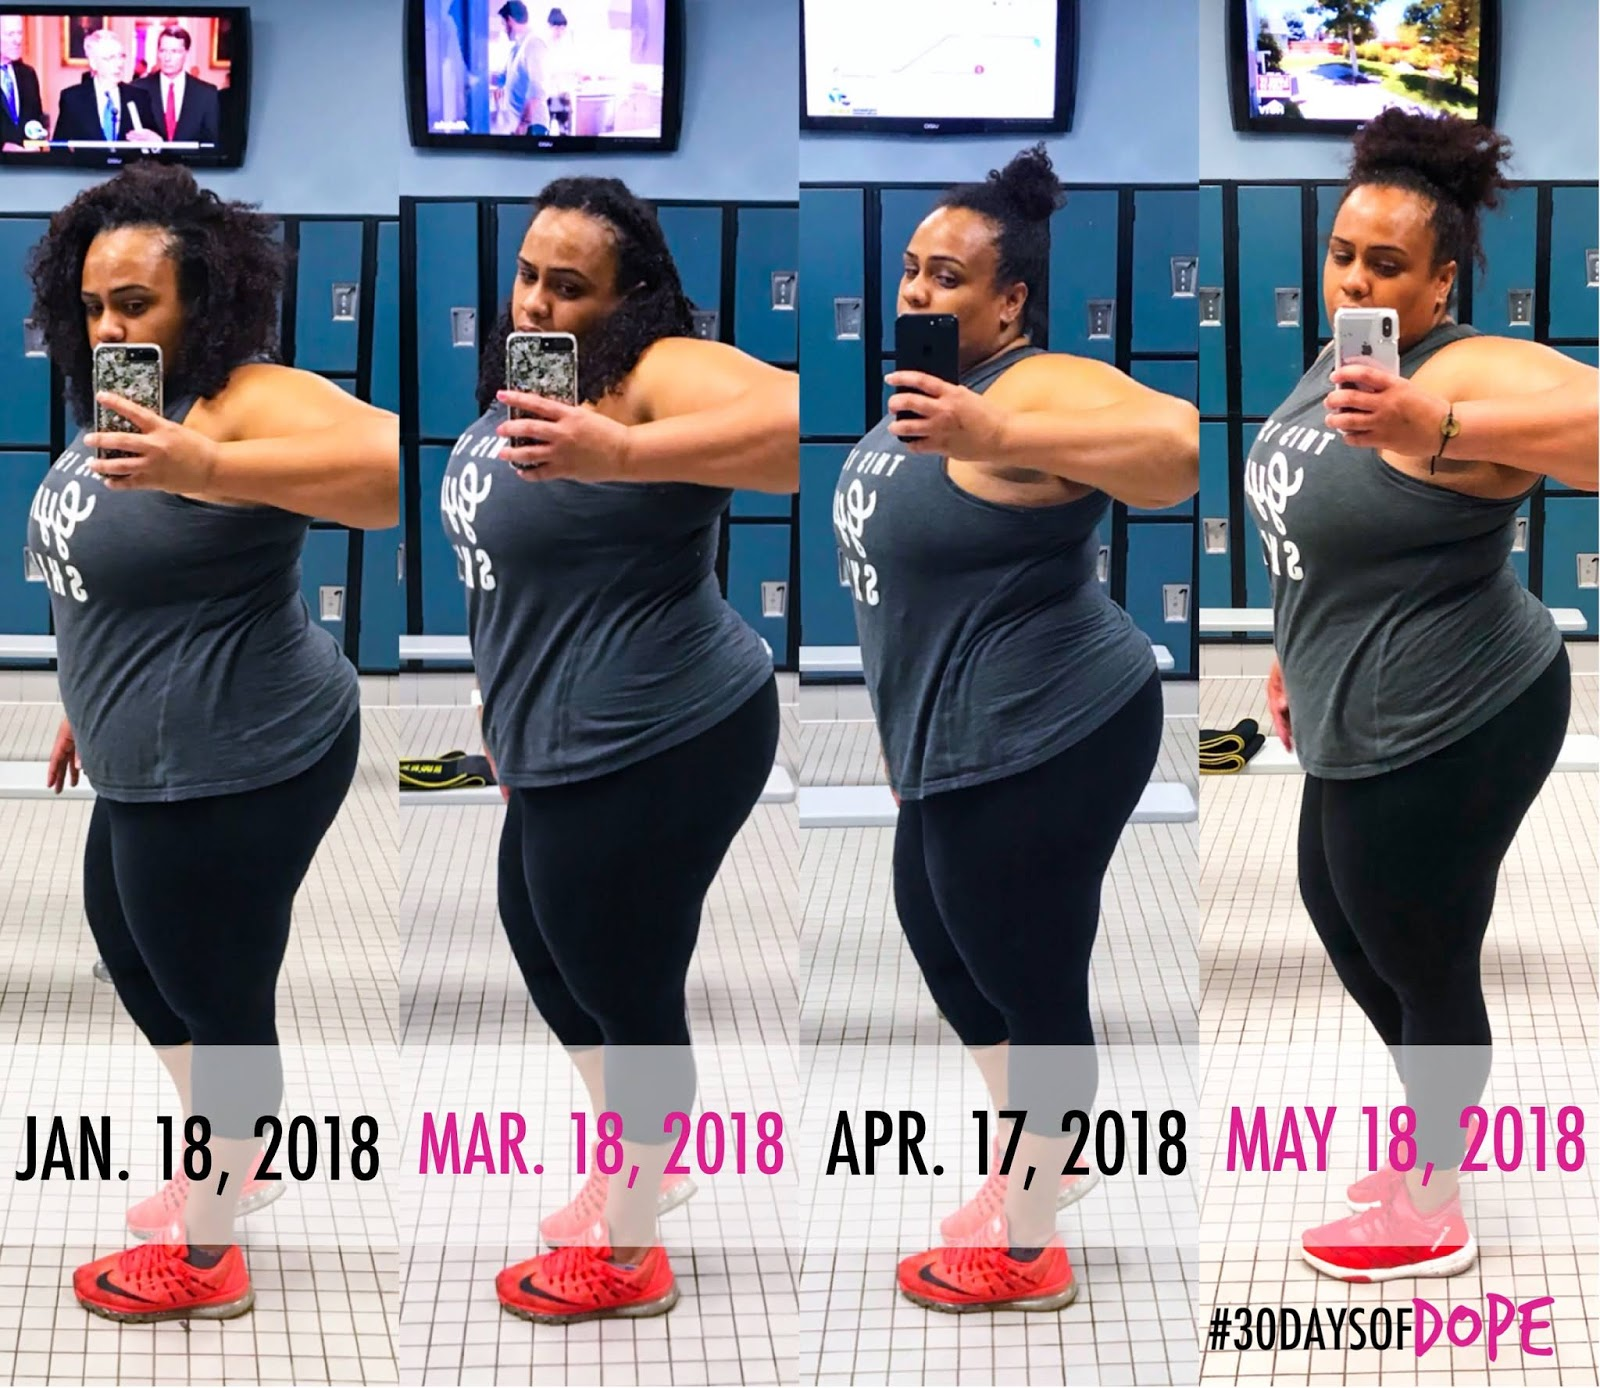 Fat Loss Update - 30DaysofDope IFFYM, Lifting Heavy for Women